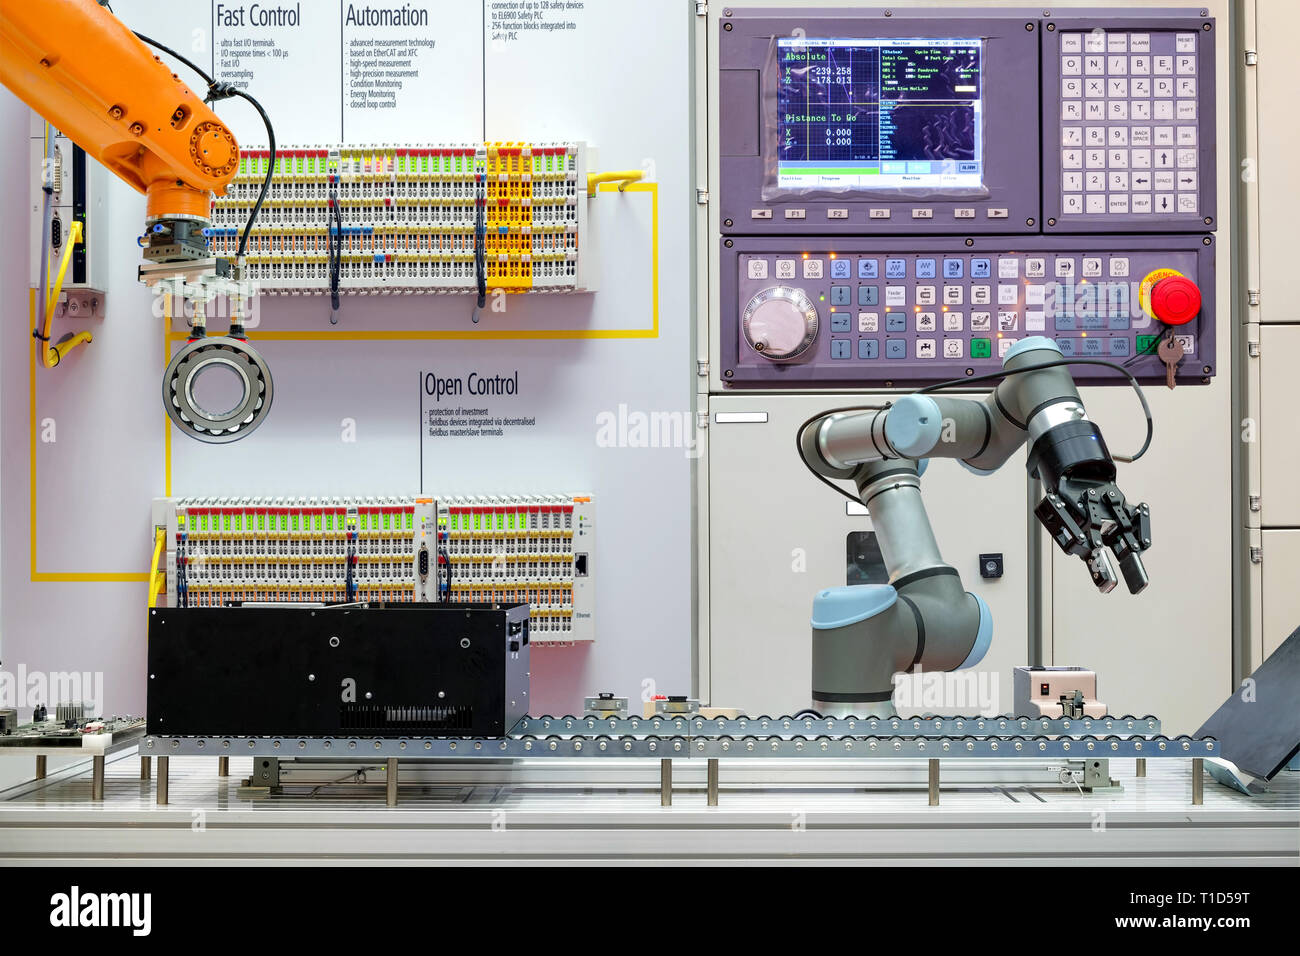 Industrial robotics working via conveyor belt on smart factory, terminal and control panel background, industry 4.0 concept Stock Photo